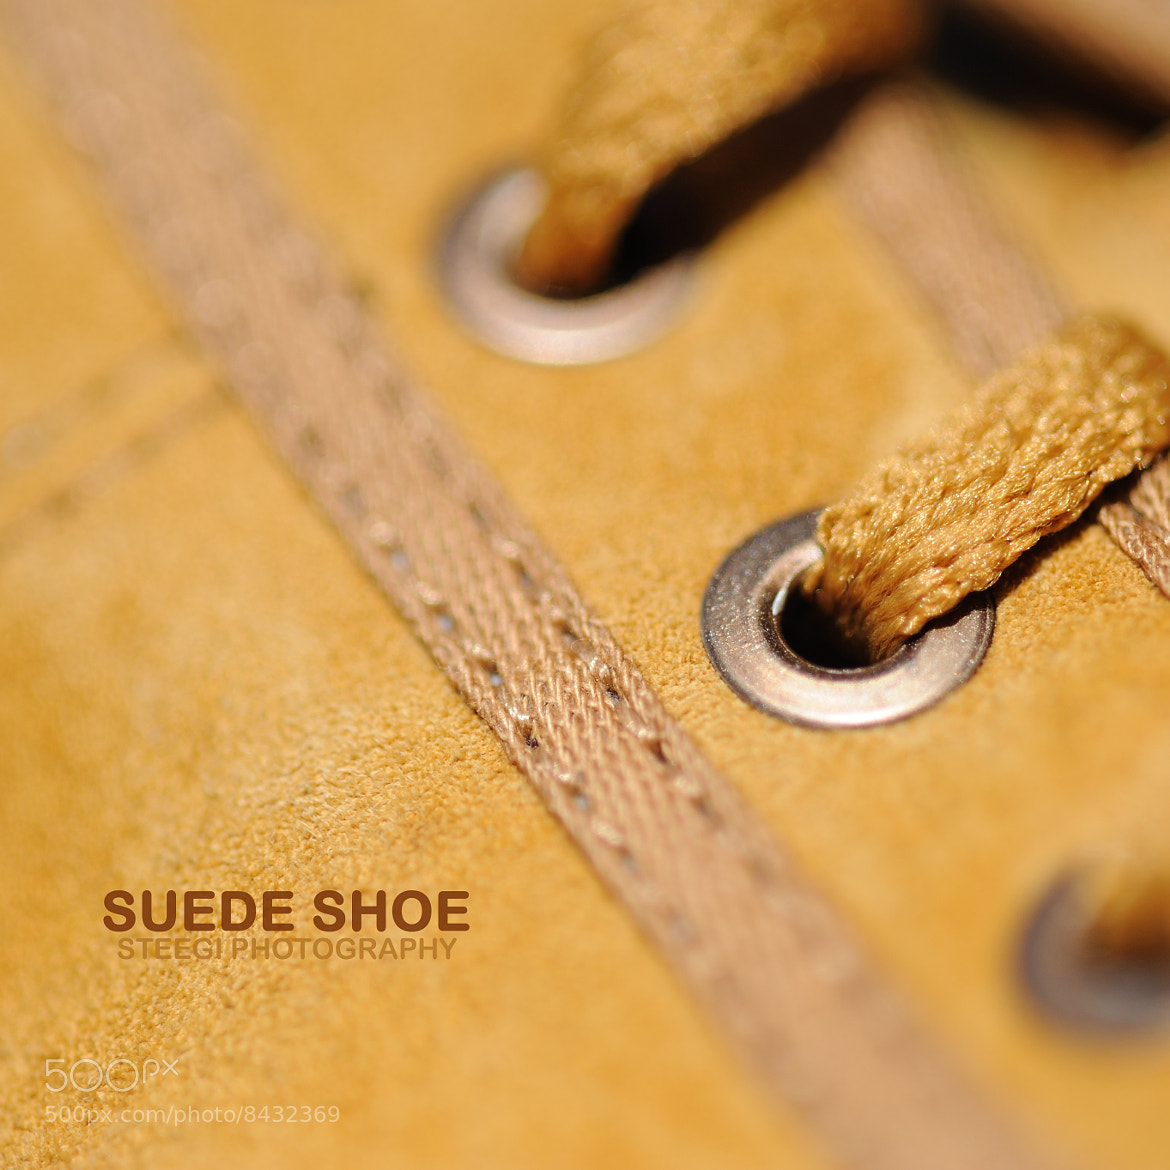 Photograph Suede Shoe by Andreas Steegmann on 500px